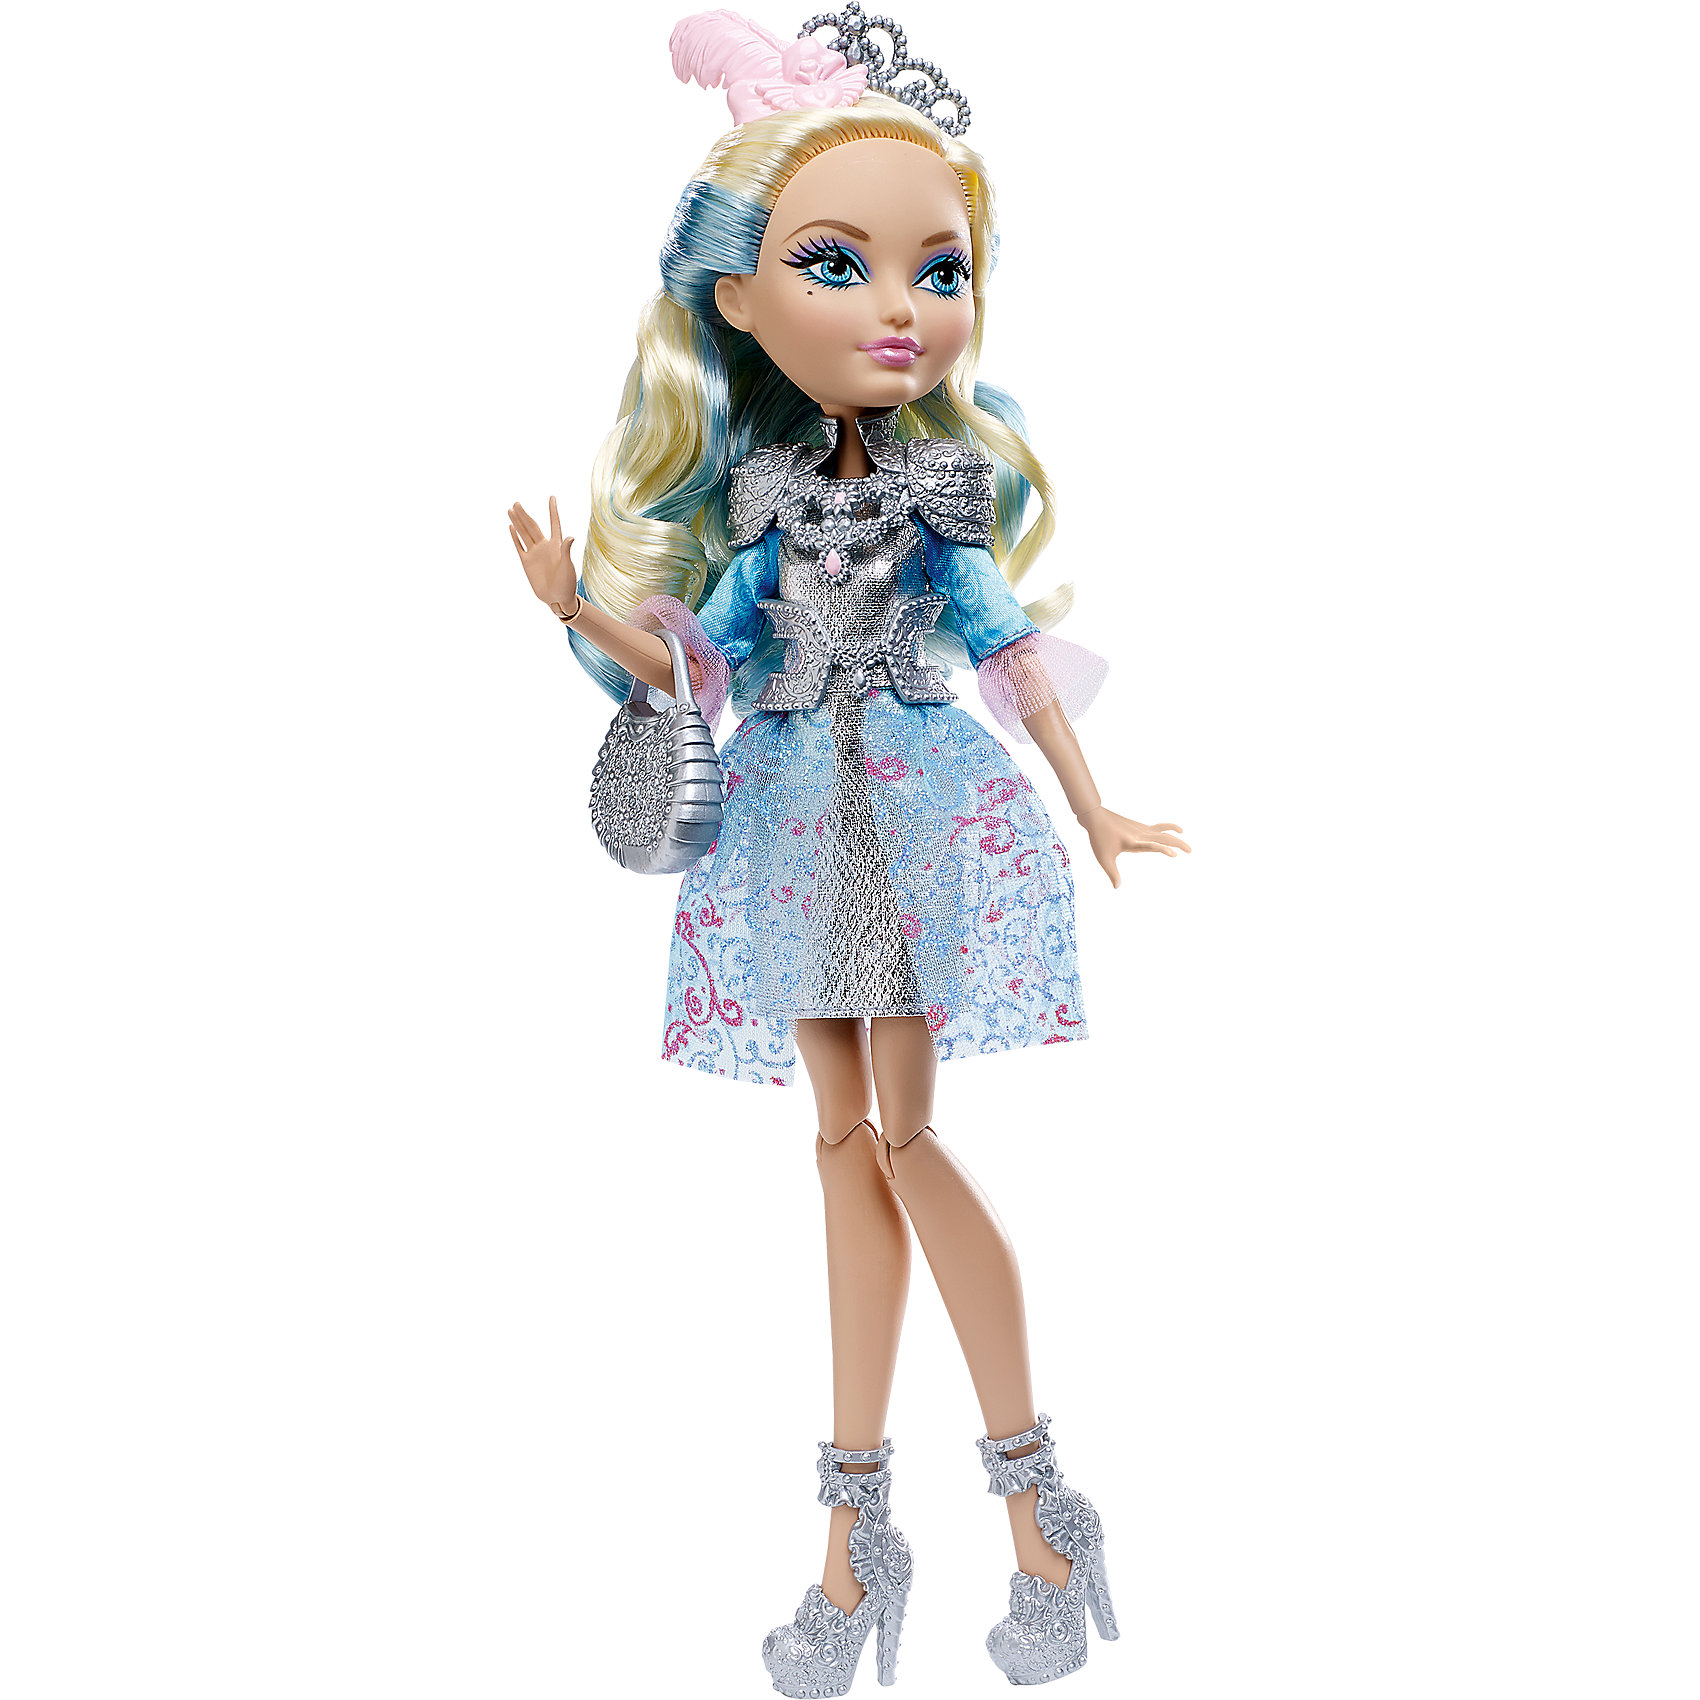 Mattel Кукла Дарлинг Чарминг, Ever After High mattel ever after high dvh81 куклы лучницы банни бланк